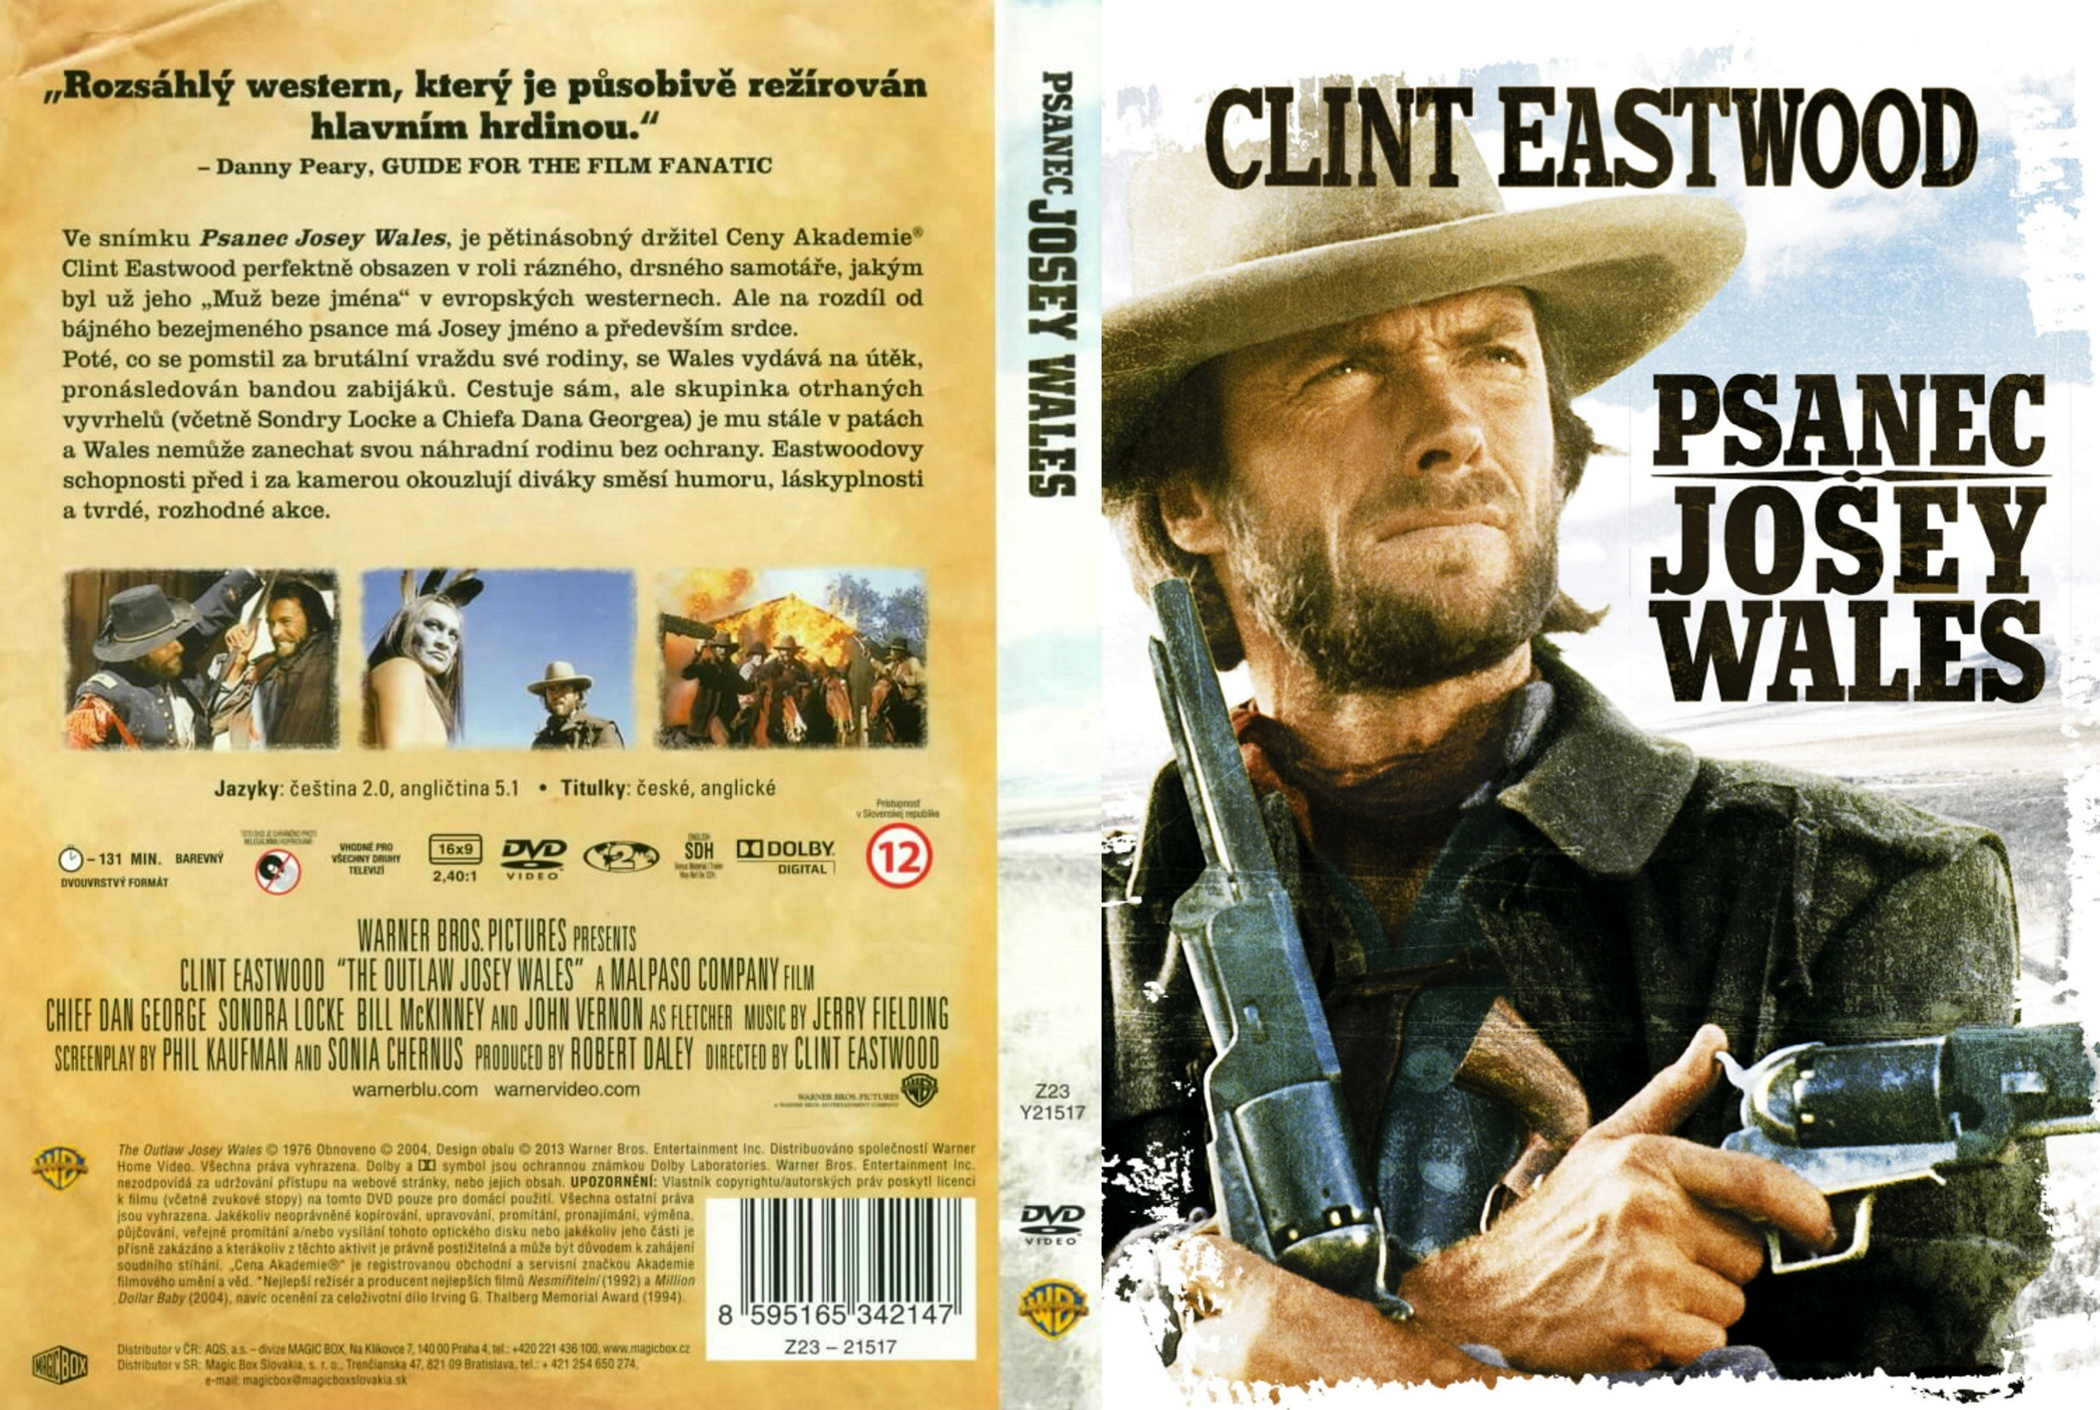 New movie with clint eastwood 2009